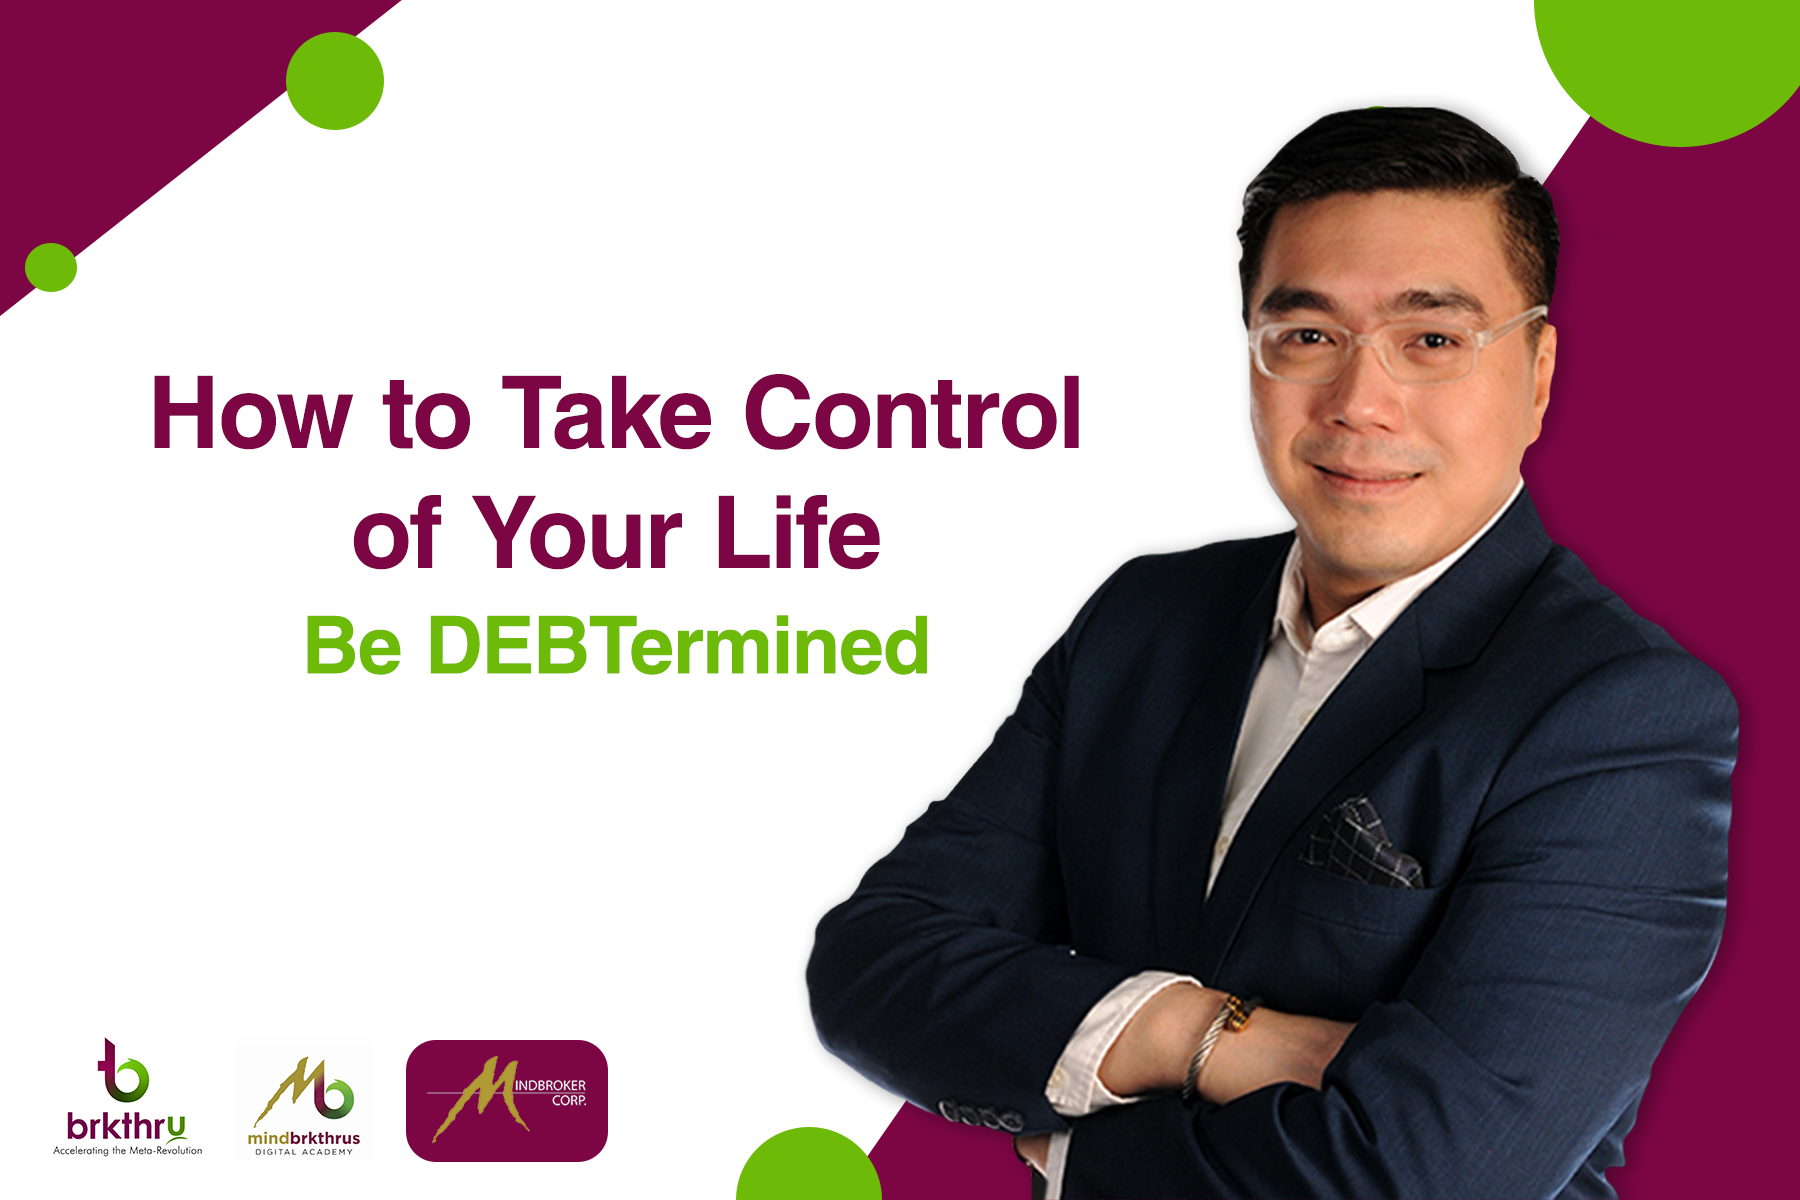 How to Take Control of Your Life - Be DEBTermined